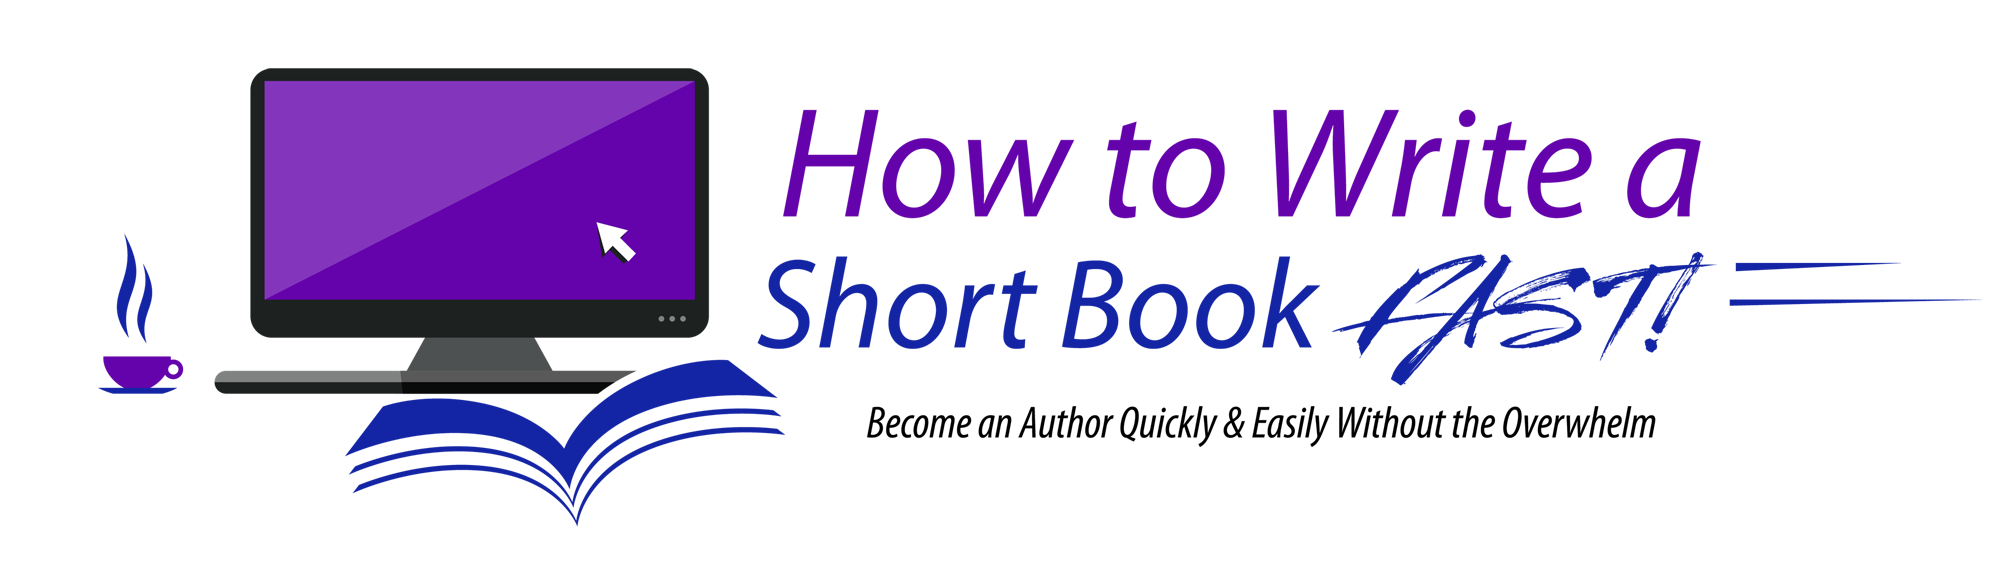 How_to_Write_a_Short_Book_FAST